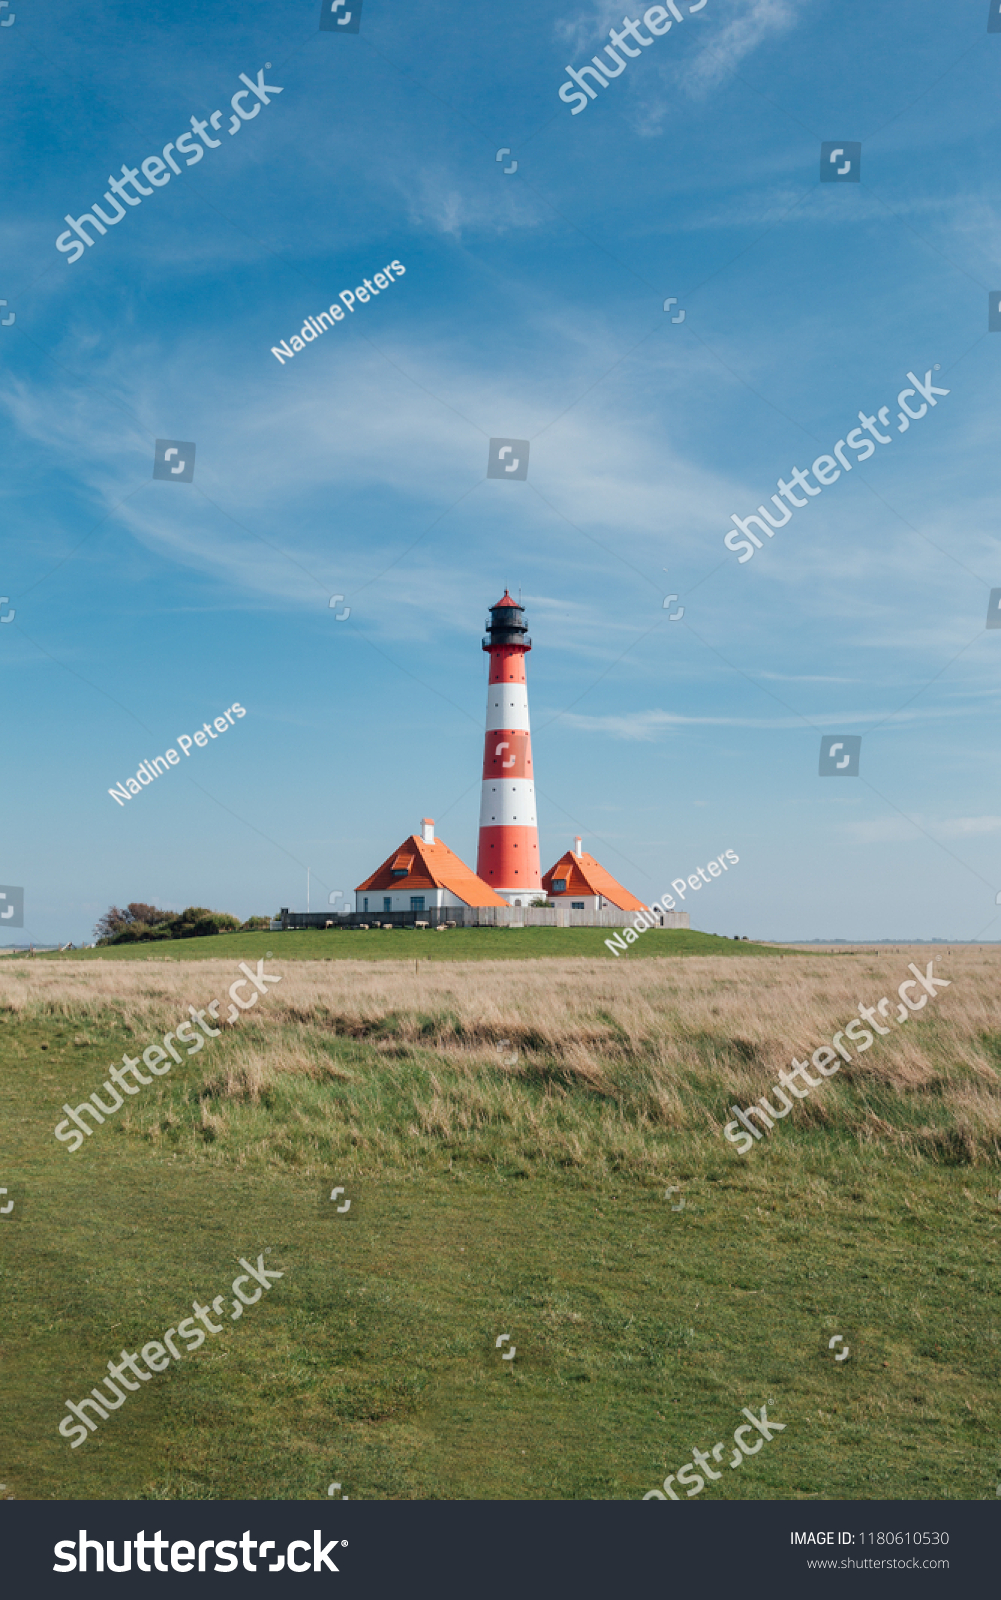 Bilder Leuchtturm Westerhever Leuchtturm Nordsee Stock Photo Edit Now 1180610530